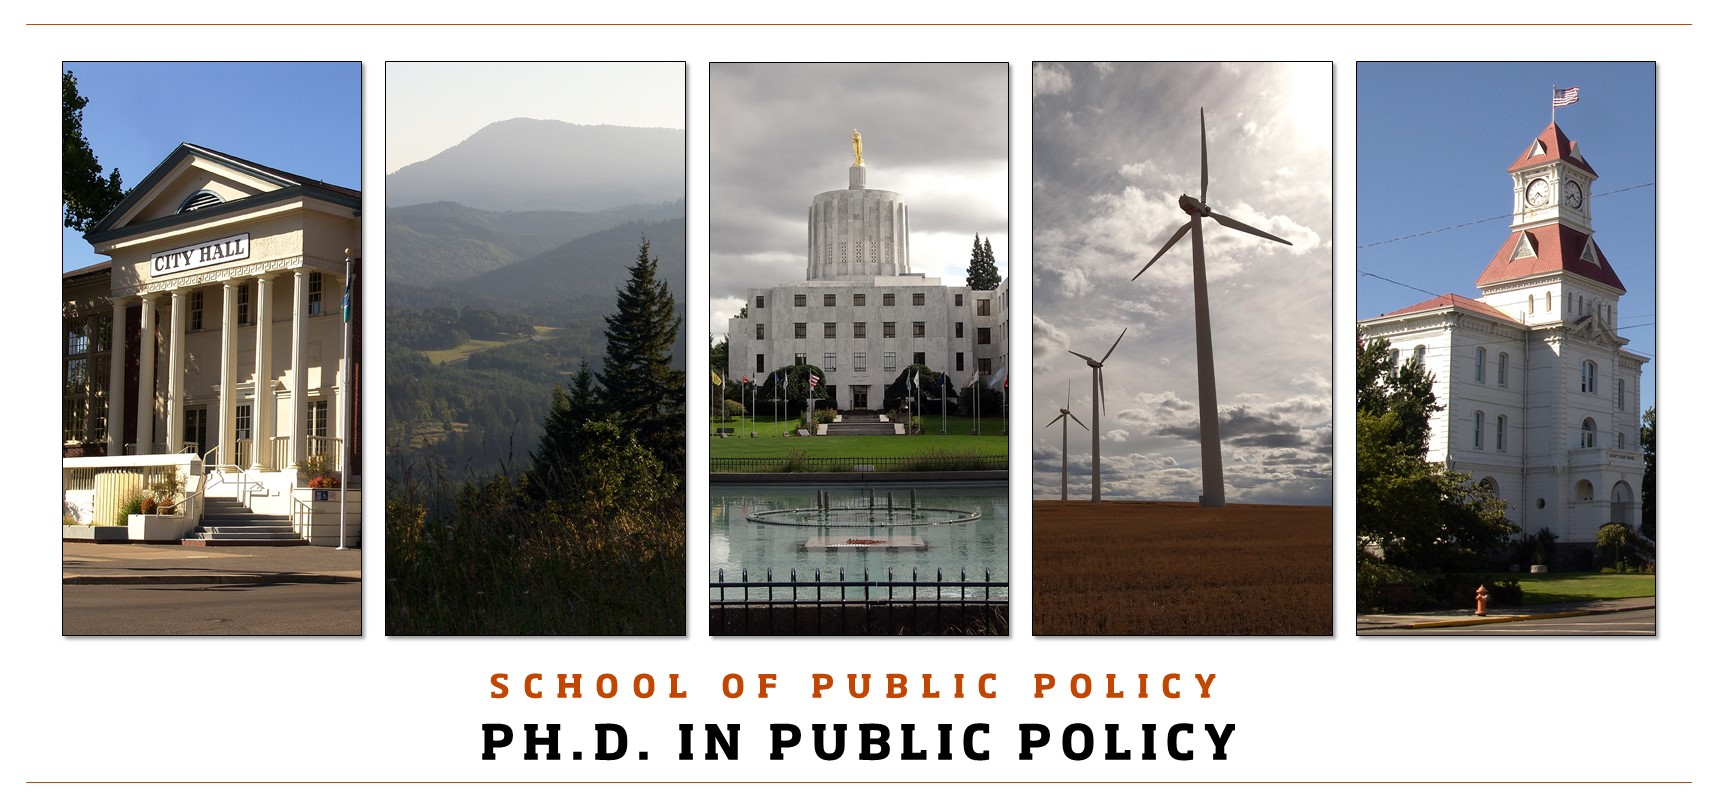 School of Public Policy Ph.D. in Public Policy